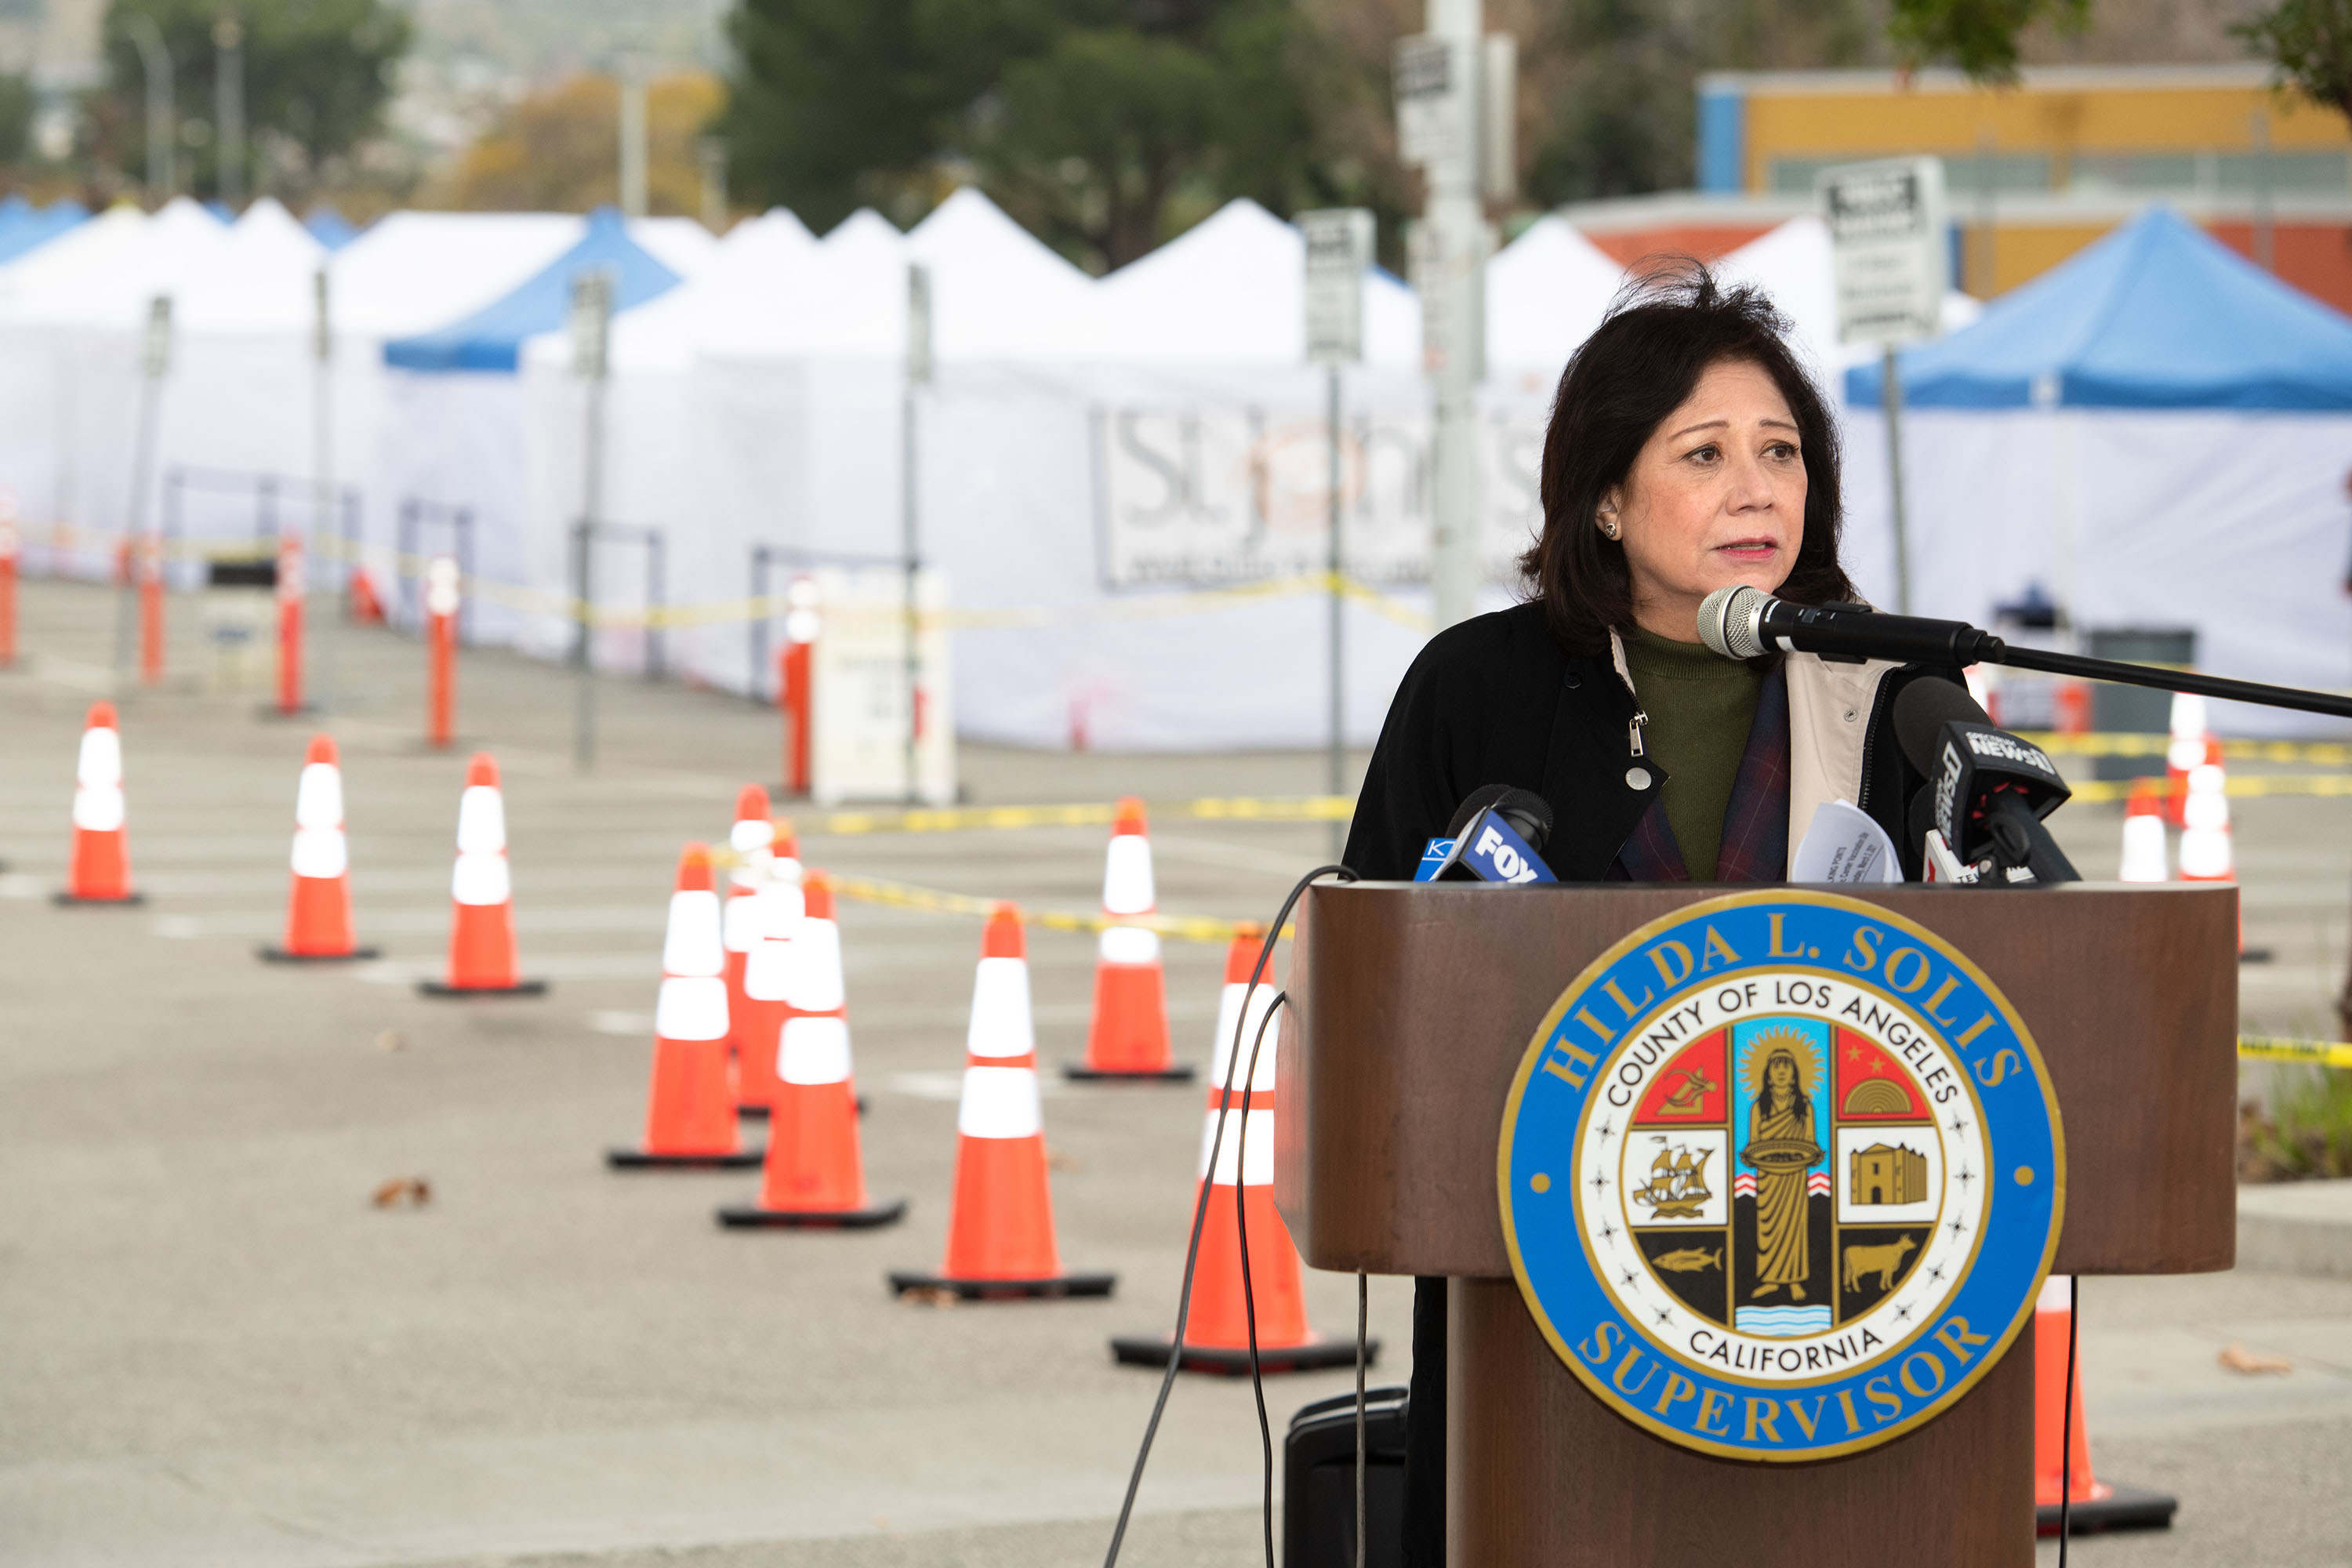 District 1 – Supervisor Hilda L. Solis<br> <b>March 3, 2021 - East LA COVID-19 vaccination clinic </b><br> <i>Photo by Bryan Chan / Board of Supervisors</i>